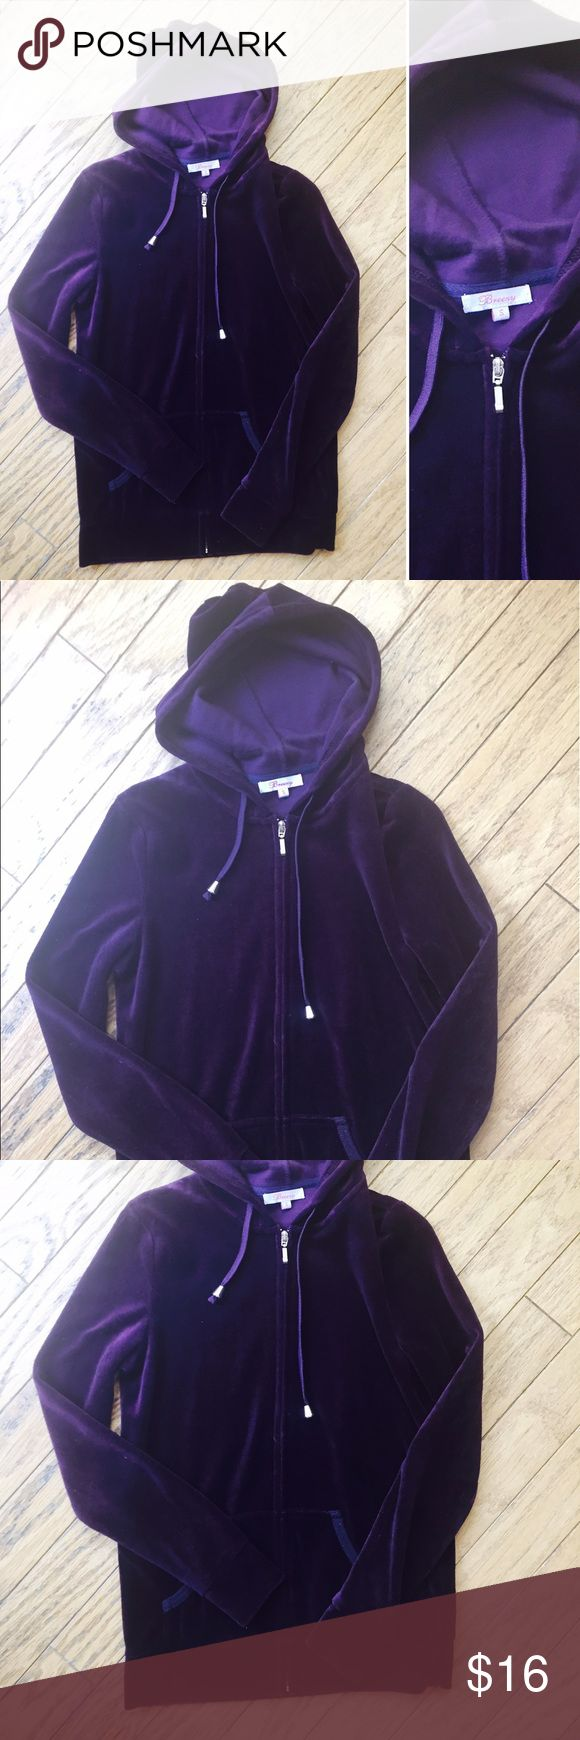 Purple Velour Tracksuit Hoodie Jacket Sweatshirt S Breezy - women's regular size small. Dark violet purple zip-up hoodie tracksuit sweatshirt. Loungewear or activewear suitable. Great condition with no flaws. JSYK - I discount all bundles 😊 Please make an offer if you're interested, thanks! Breezy Tops Sweatshirts & Hoodies